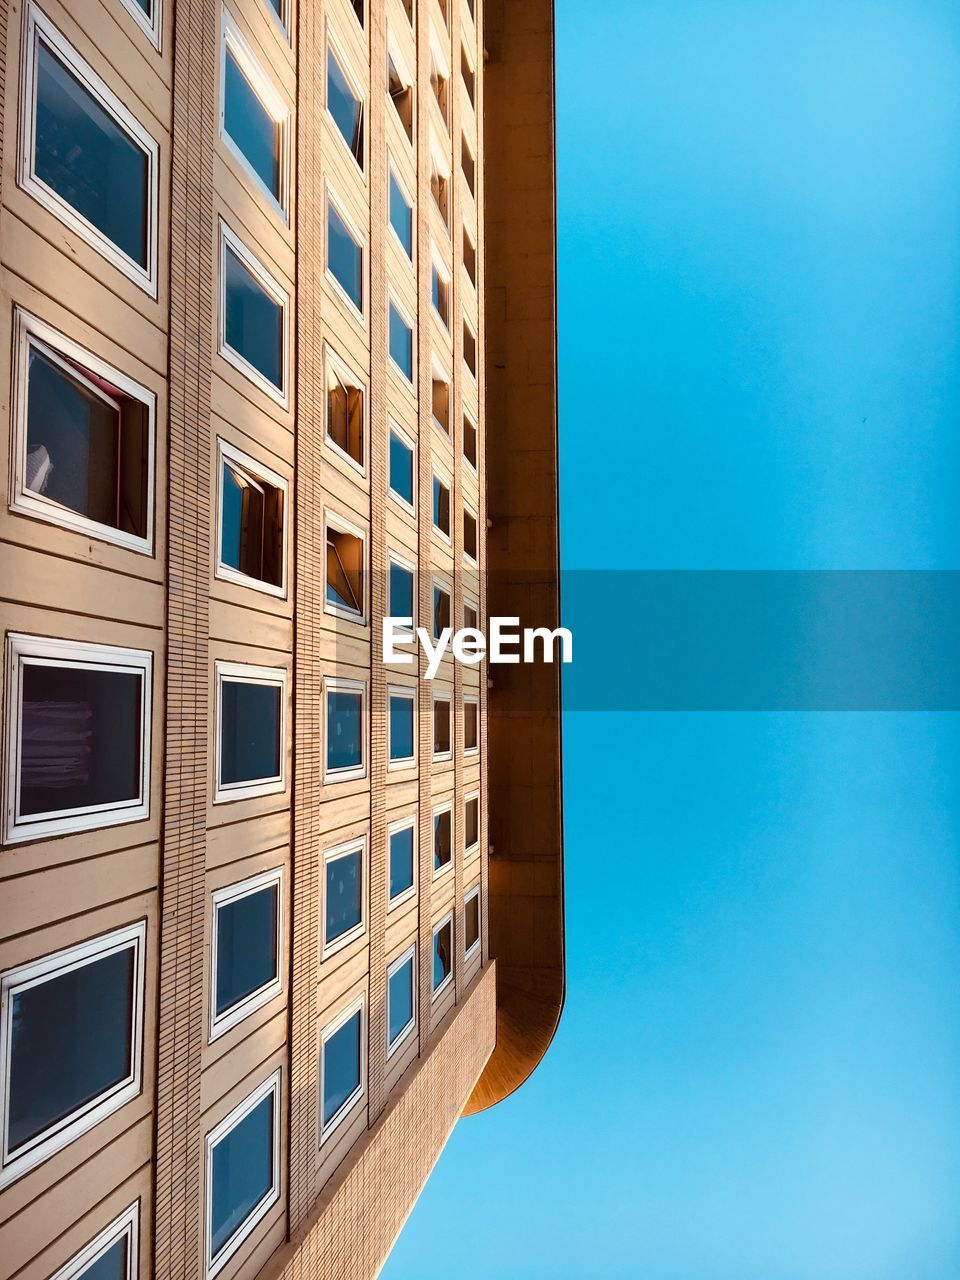 architecture, building exterior, built structure, window, blue, day, outdoors, no people, sky, low angle view, clear sky, city